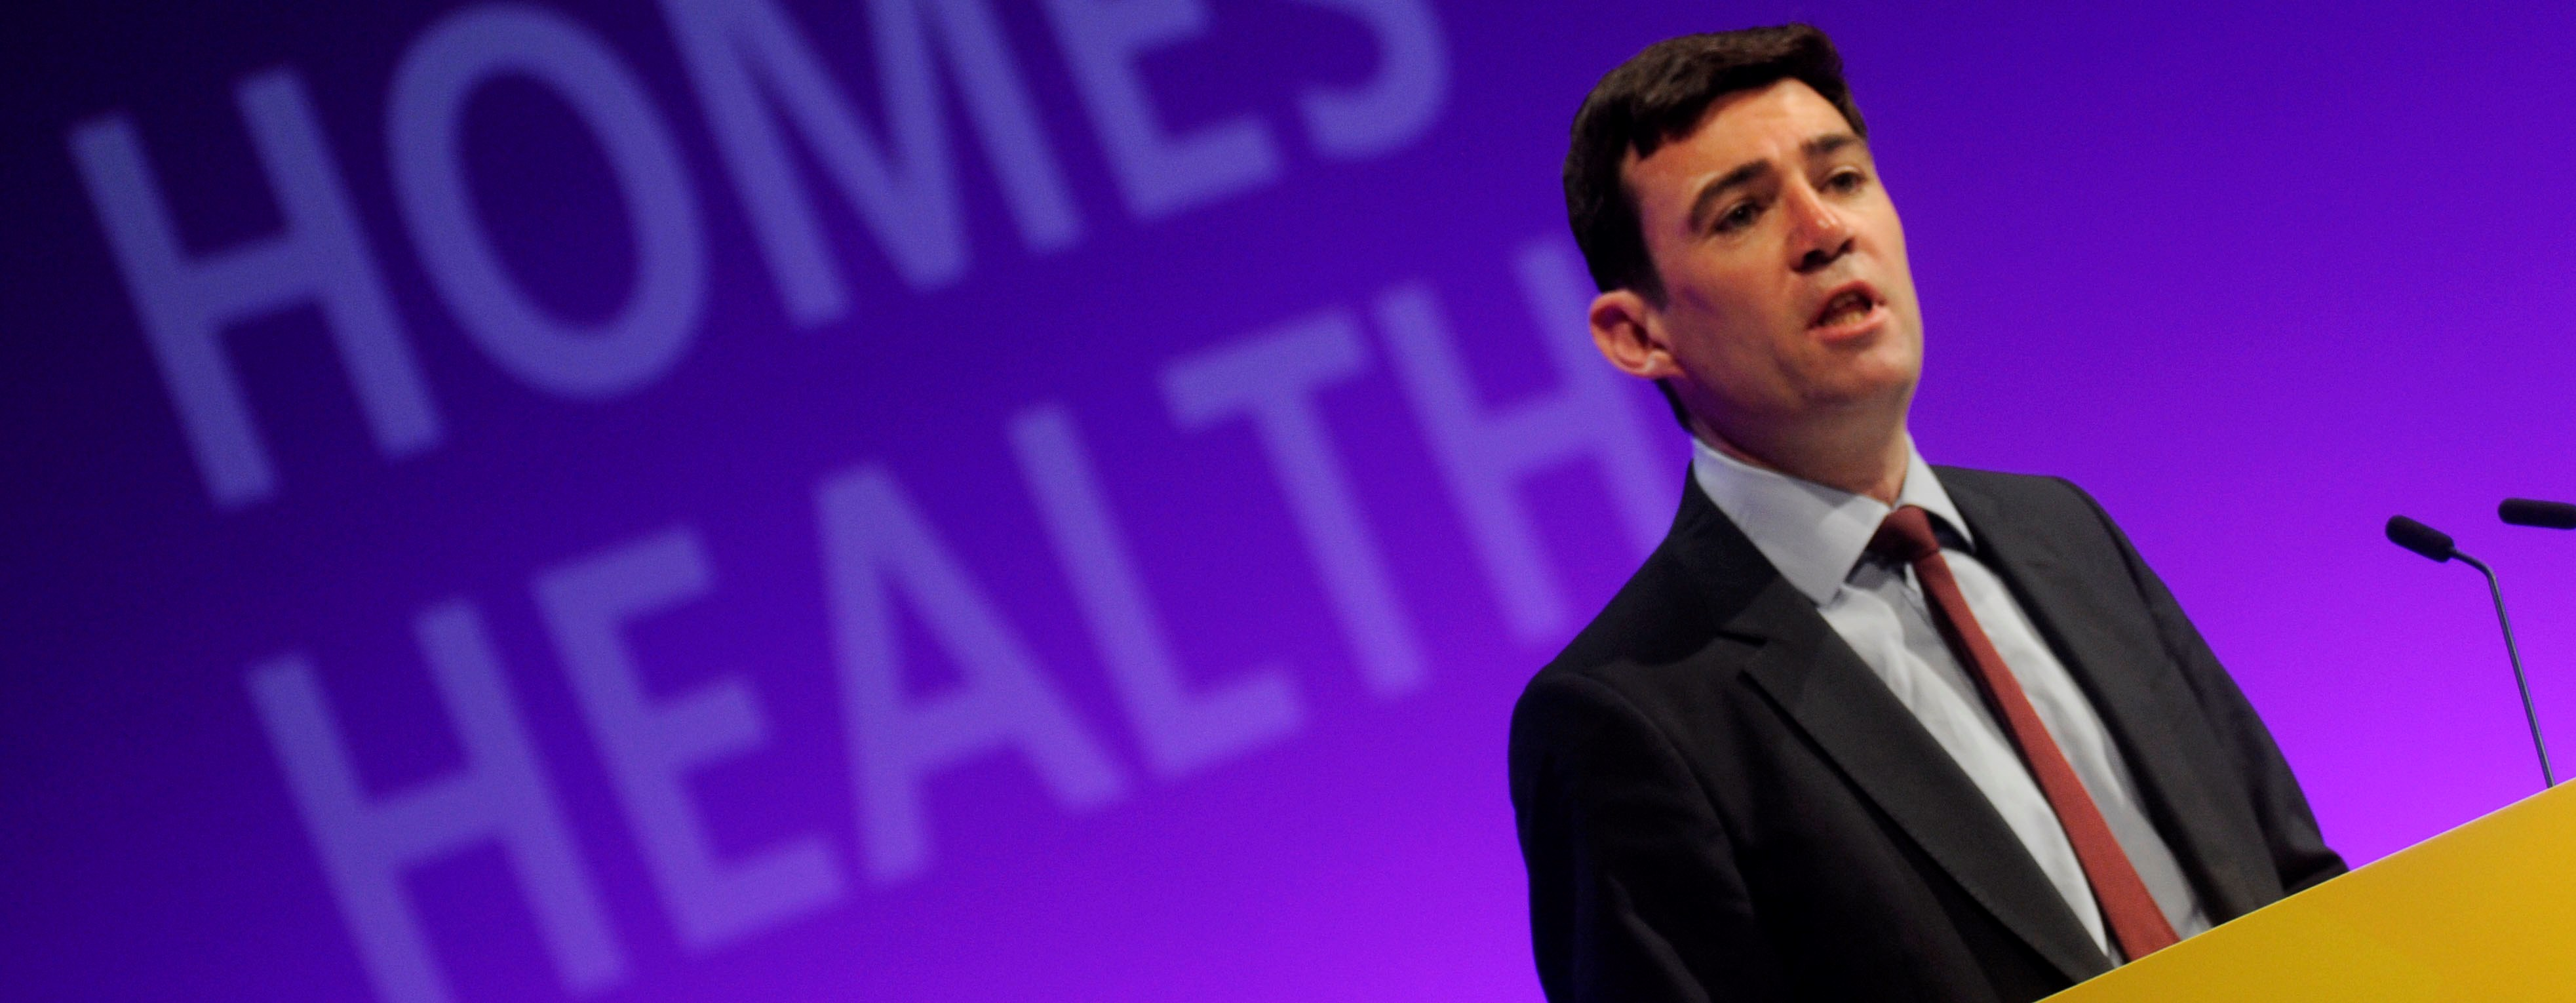 Burnham calls for privatisation end. Stop NHS privatisation call backed by Unite